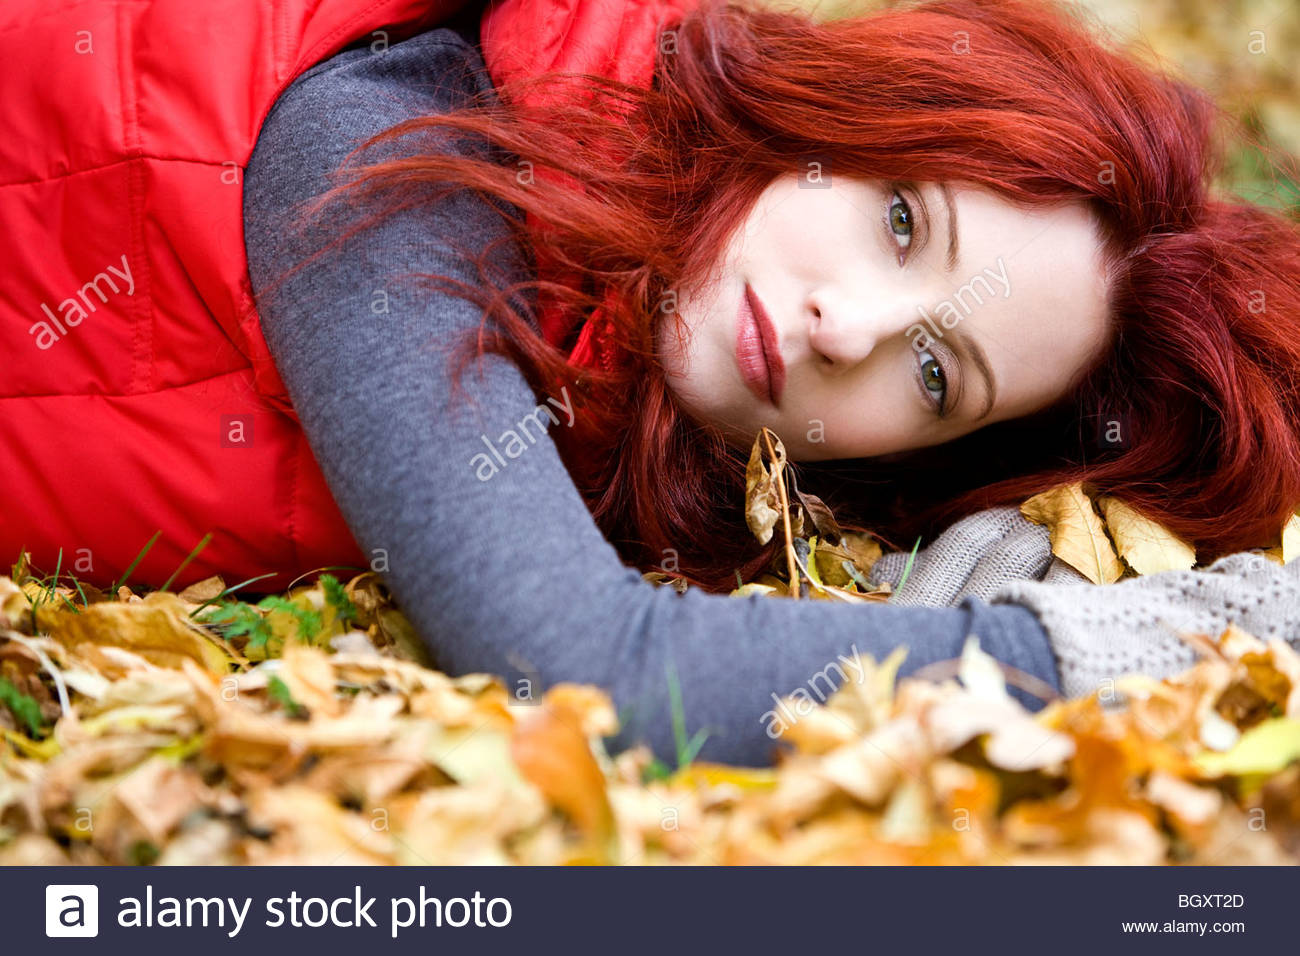 A young woman lying on autumn leaves - Stock Image